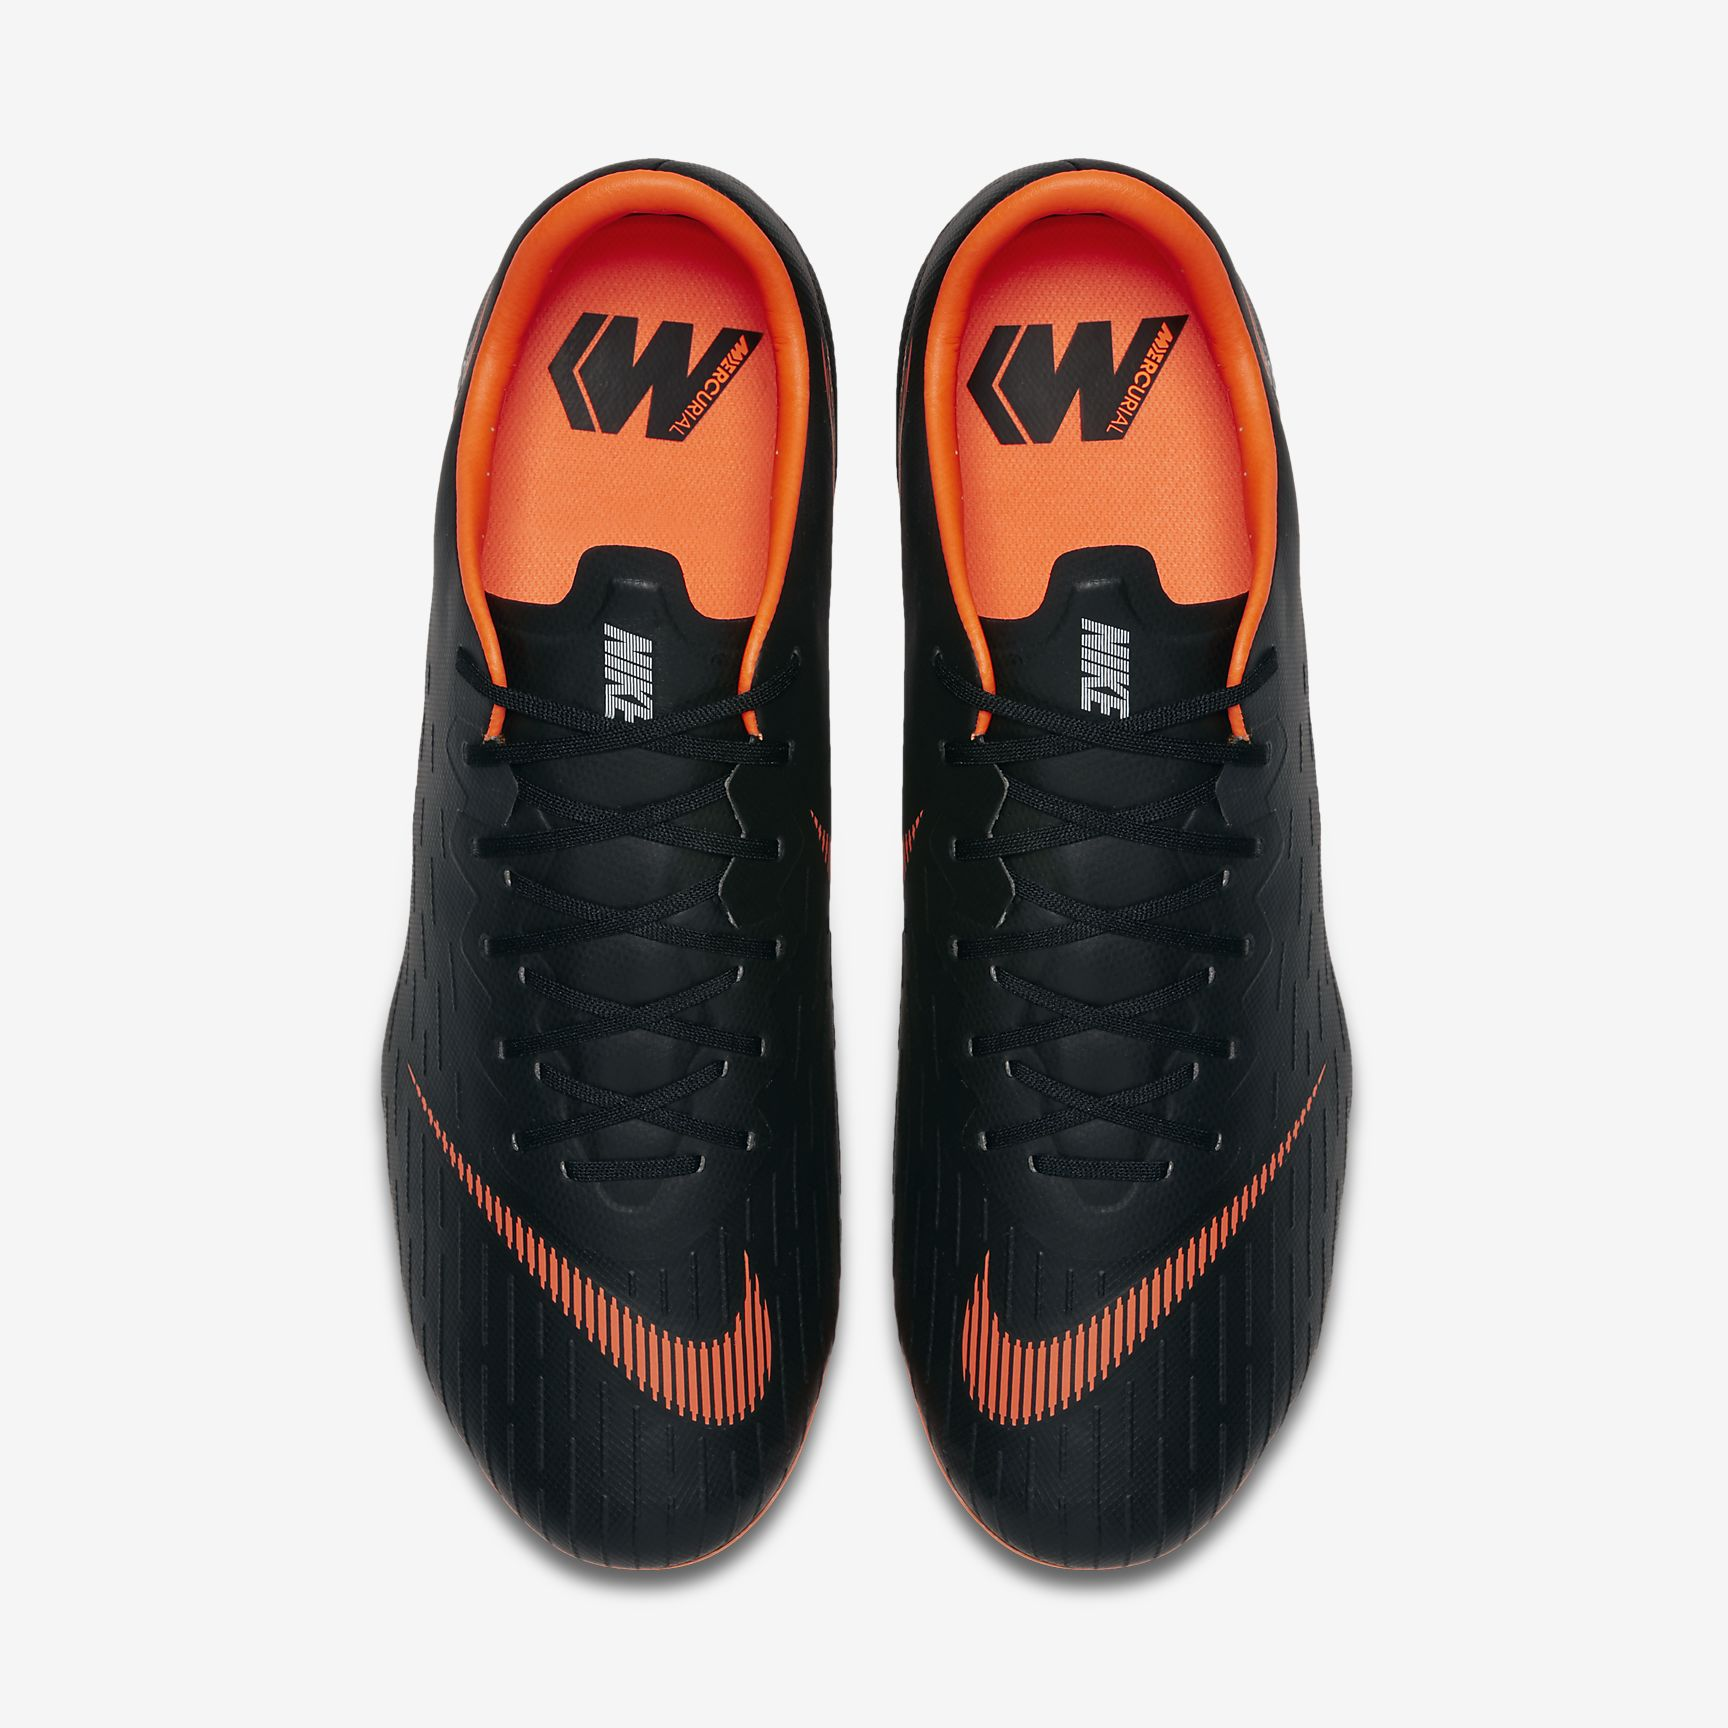 mercurial-vapor-xii-pro-firm-ground-soccer-cleat-N3LOPg-3.jpg